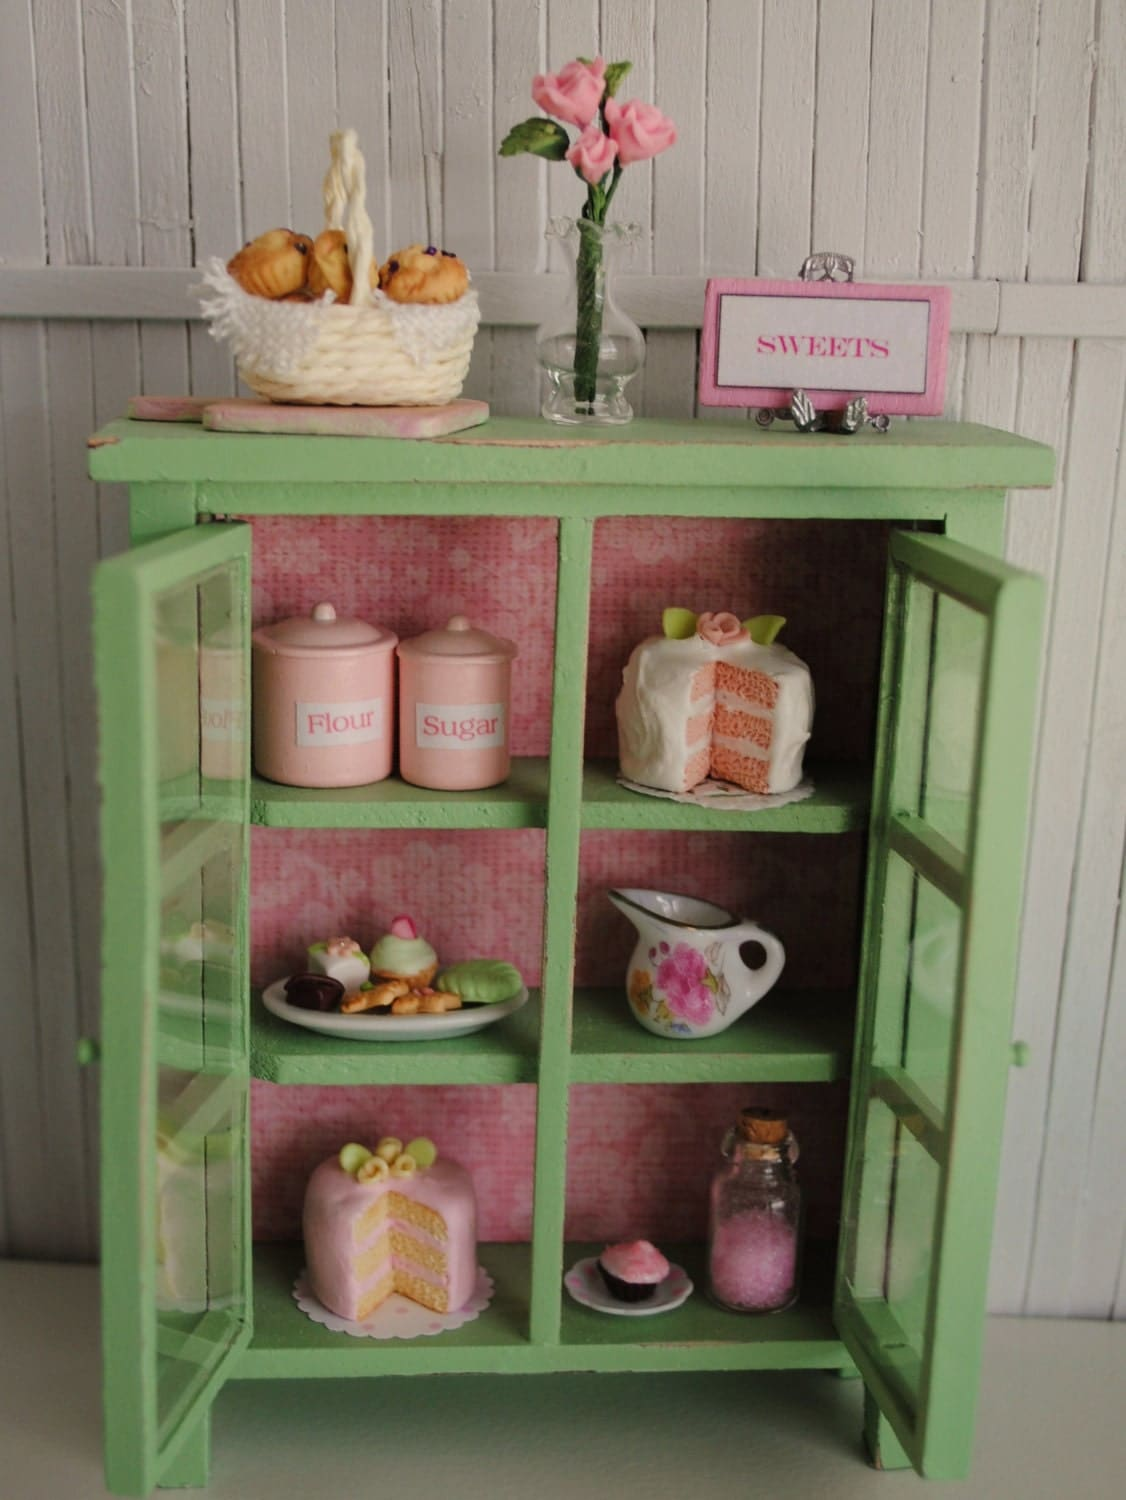 Miniature Green Shabby Chic Kitchen Cabinet Filled With Cakes